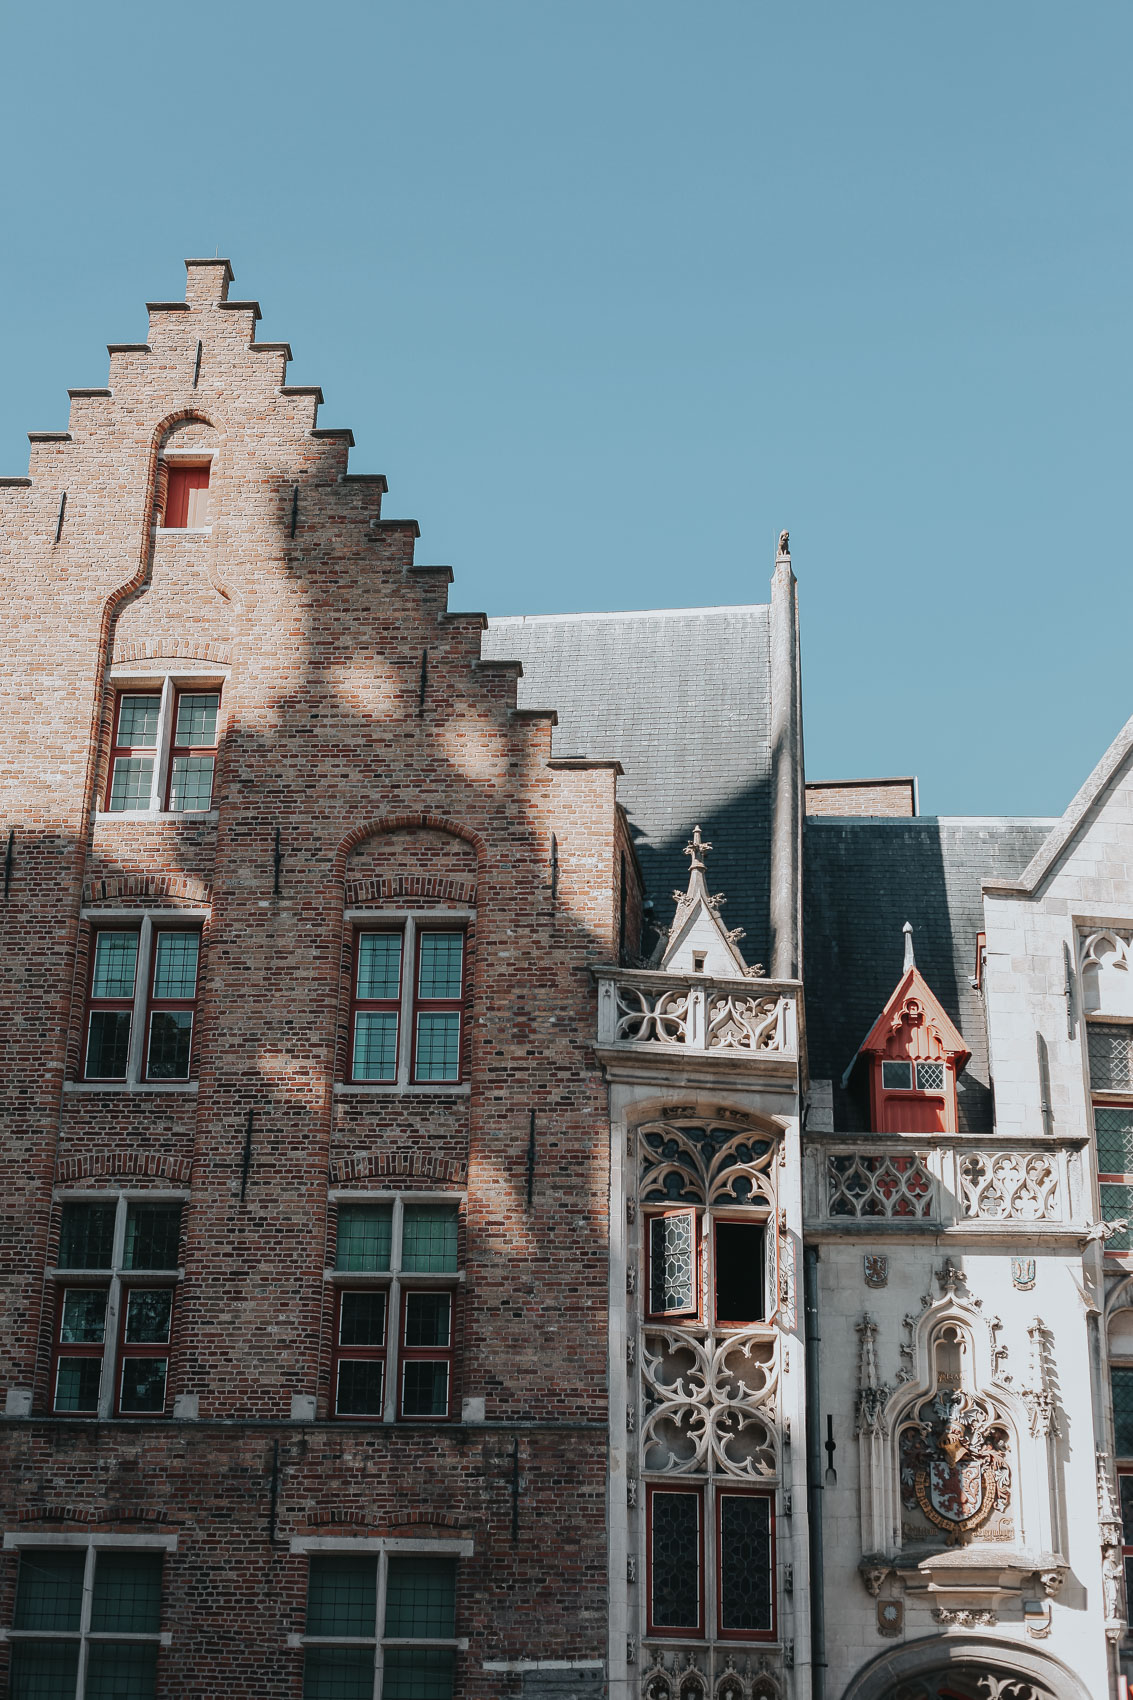 the smallest house in Bruges